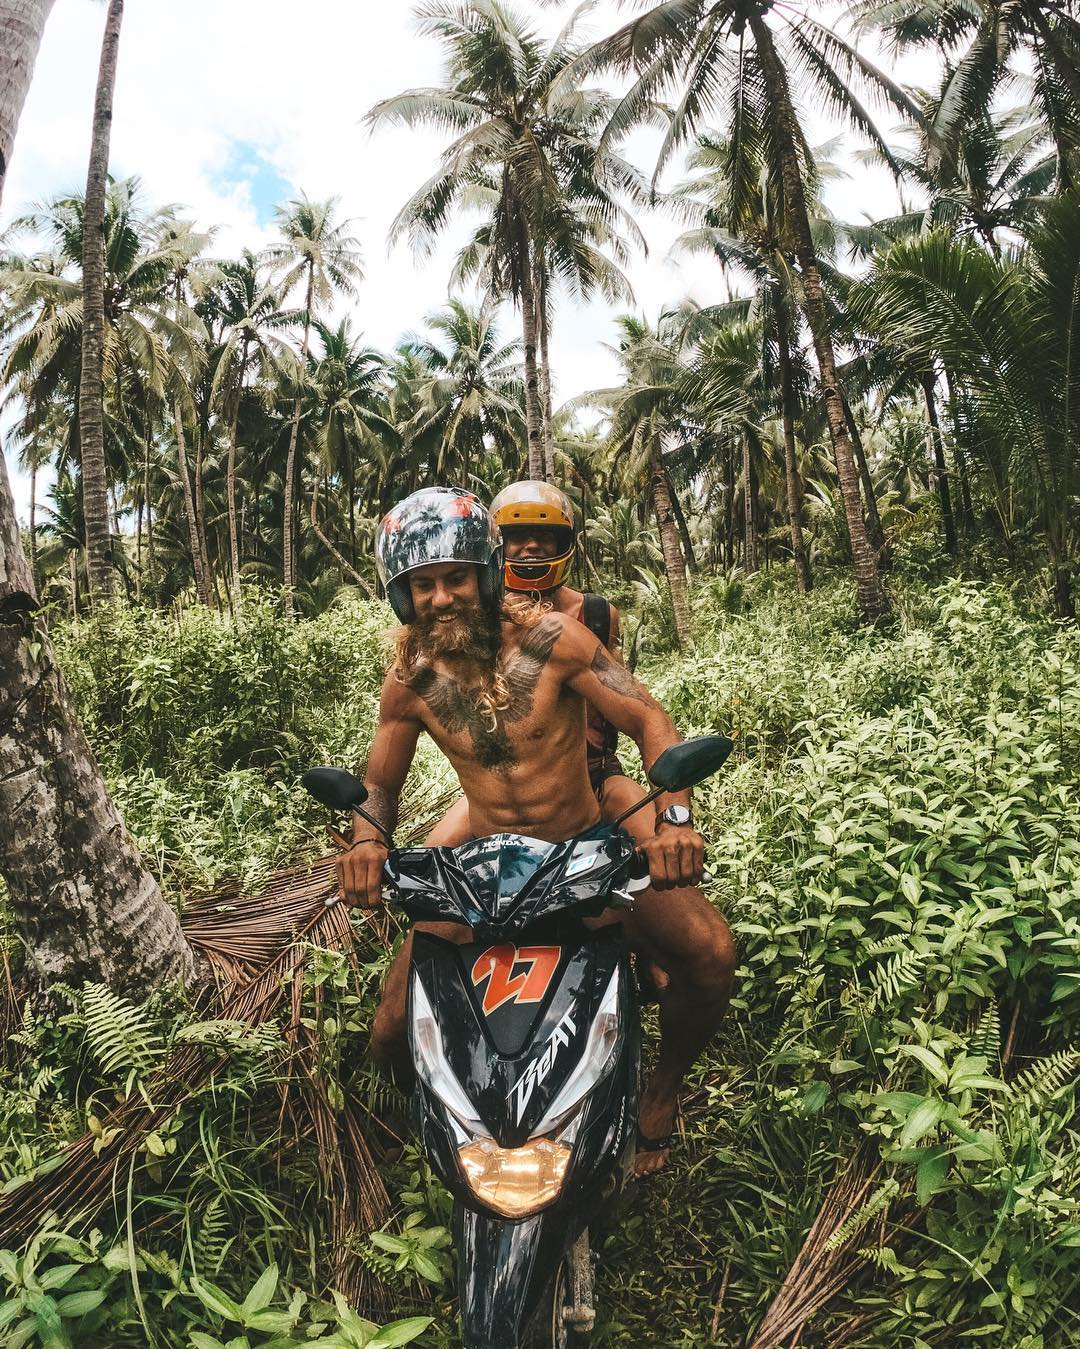 Weaving through the Jungle Paths of Siargao Island